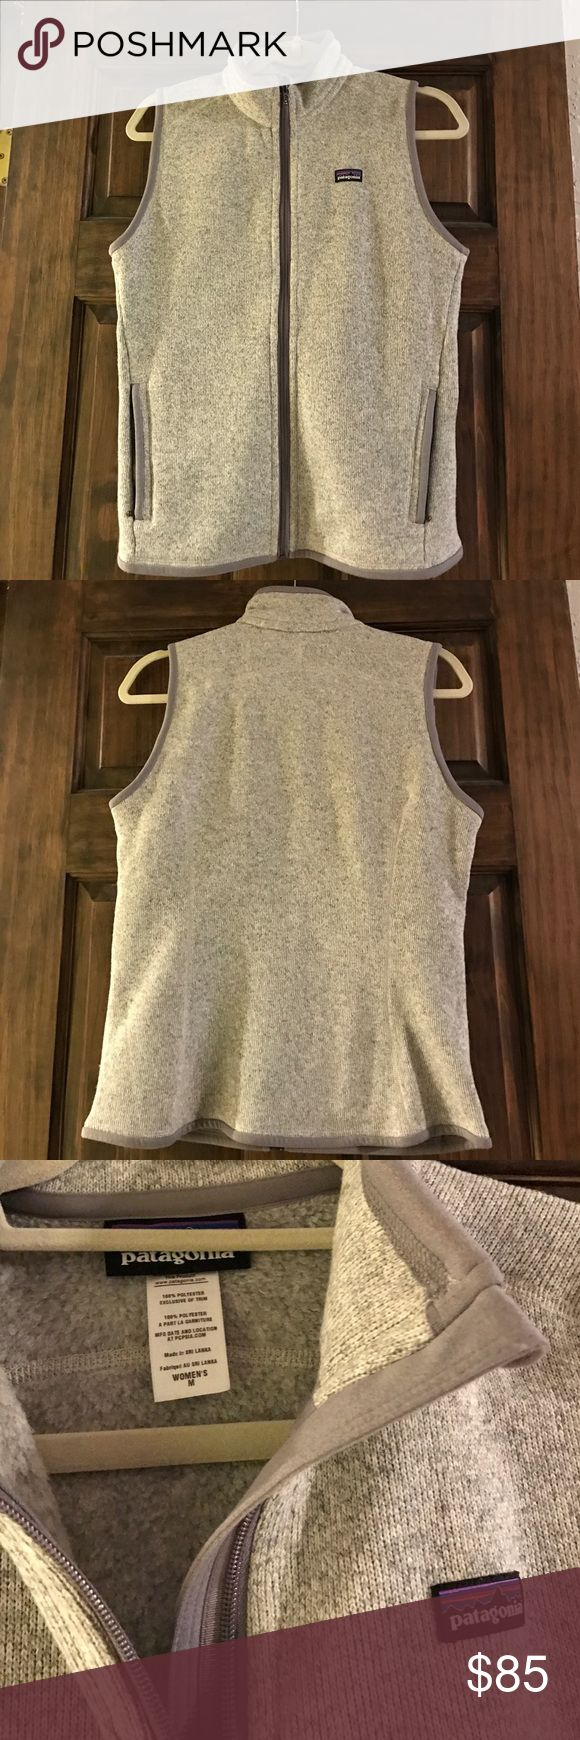 Patagonia better sweater vest (M) Selling a NWOT Patagonia Better Sweater Vest (woman's size medium in grey). No signs of wear, is brand new! Motivated seller so make an offer :) Patagonia Jackets & Coats Vests